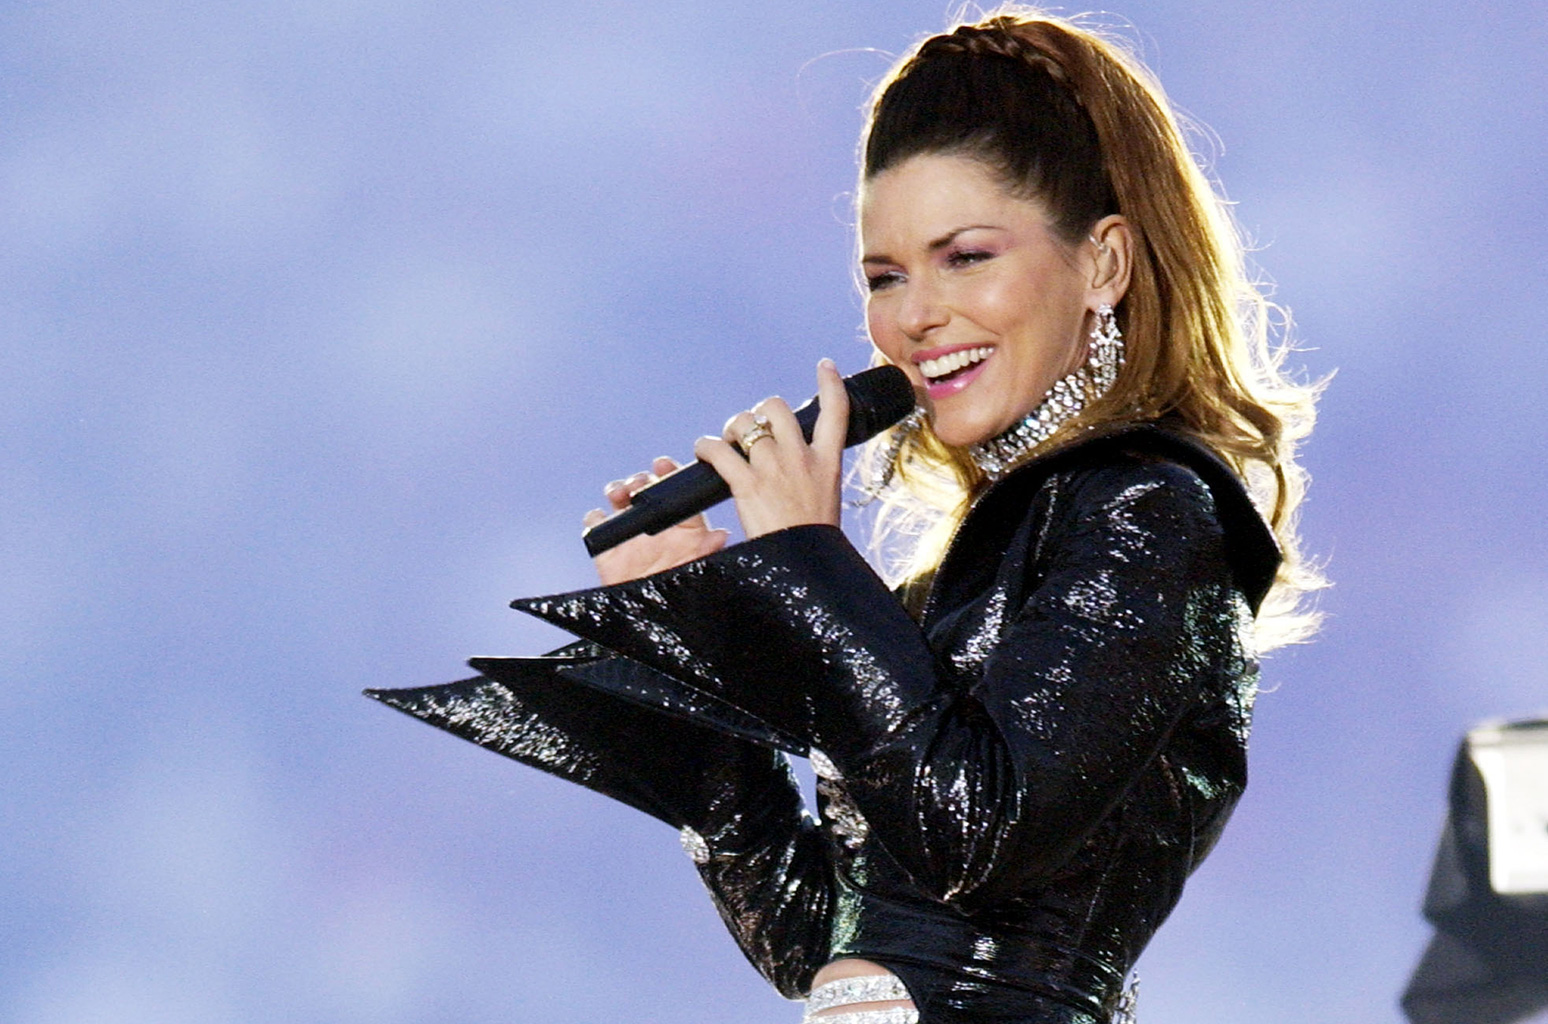 Win a trip for 2 to see Shania Twain perform in Las Vegas